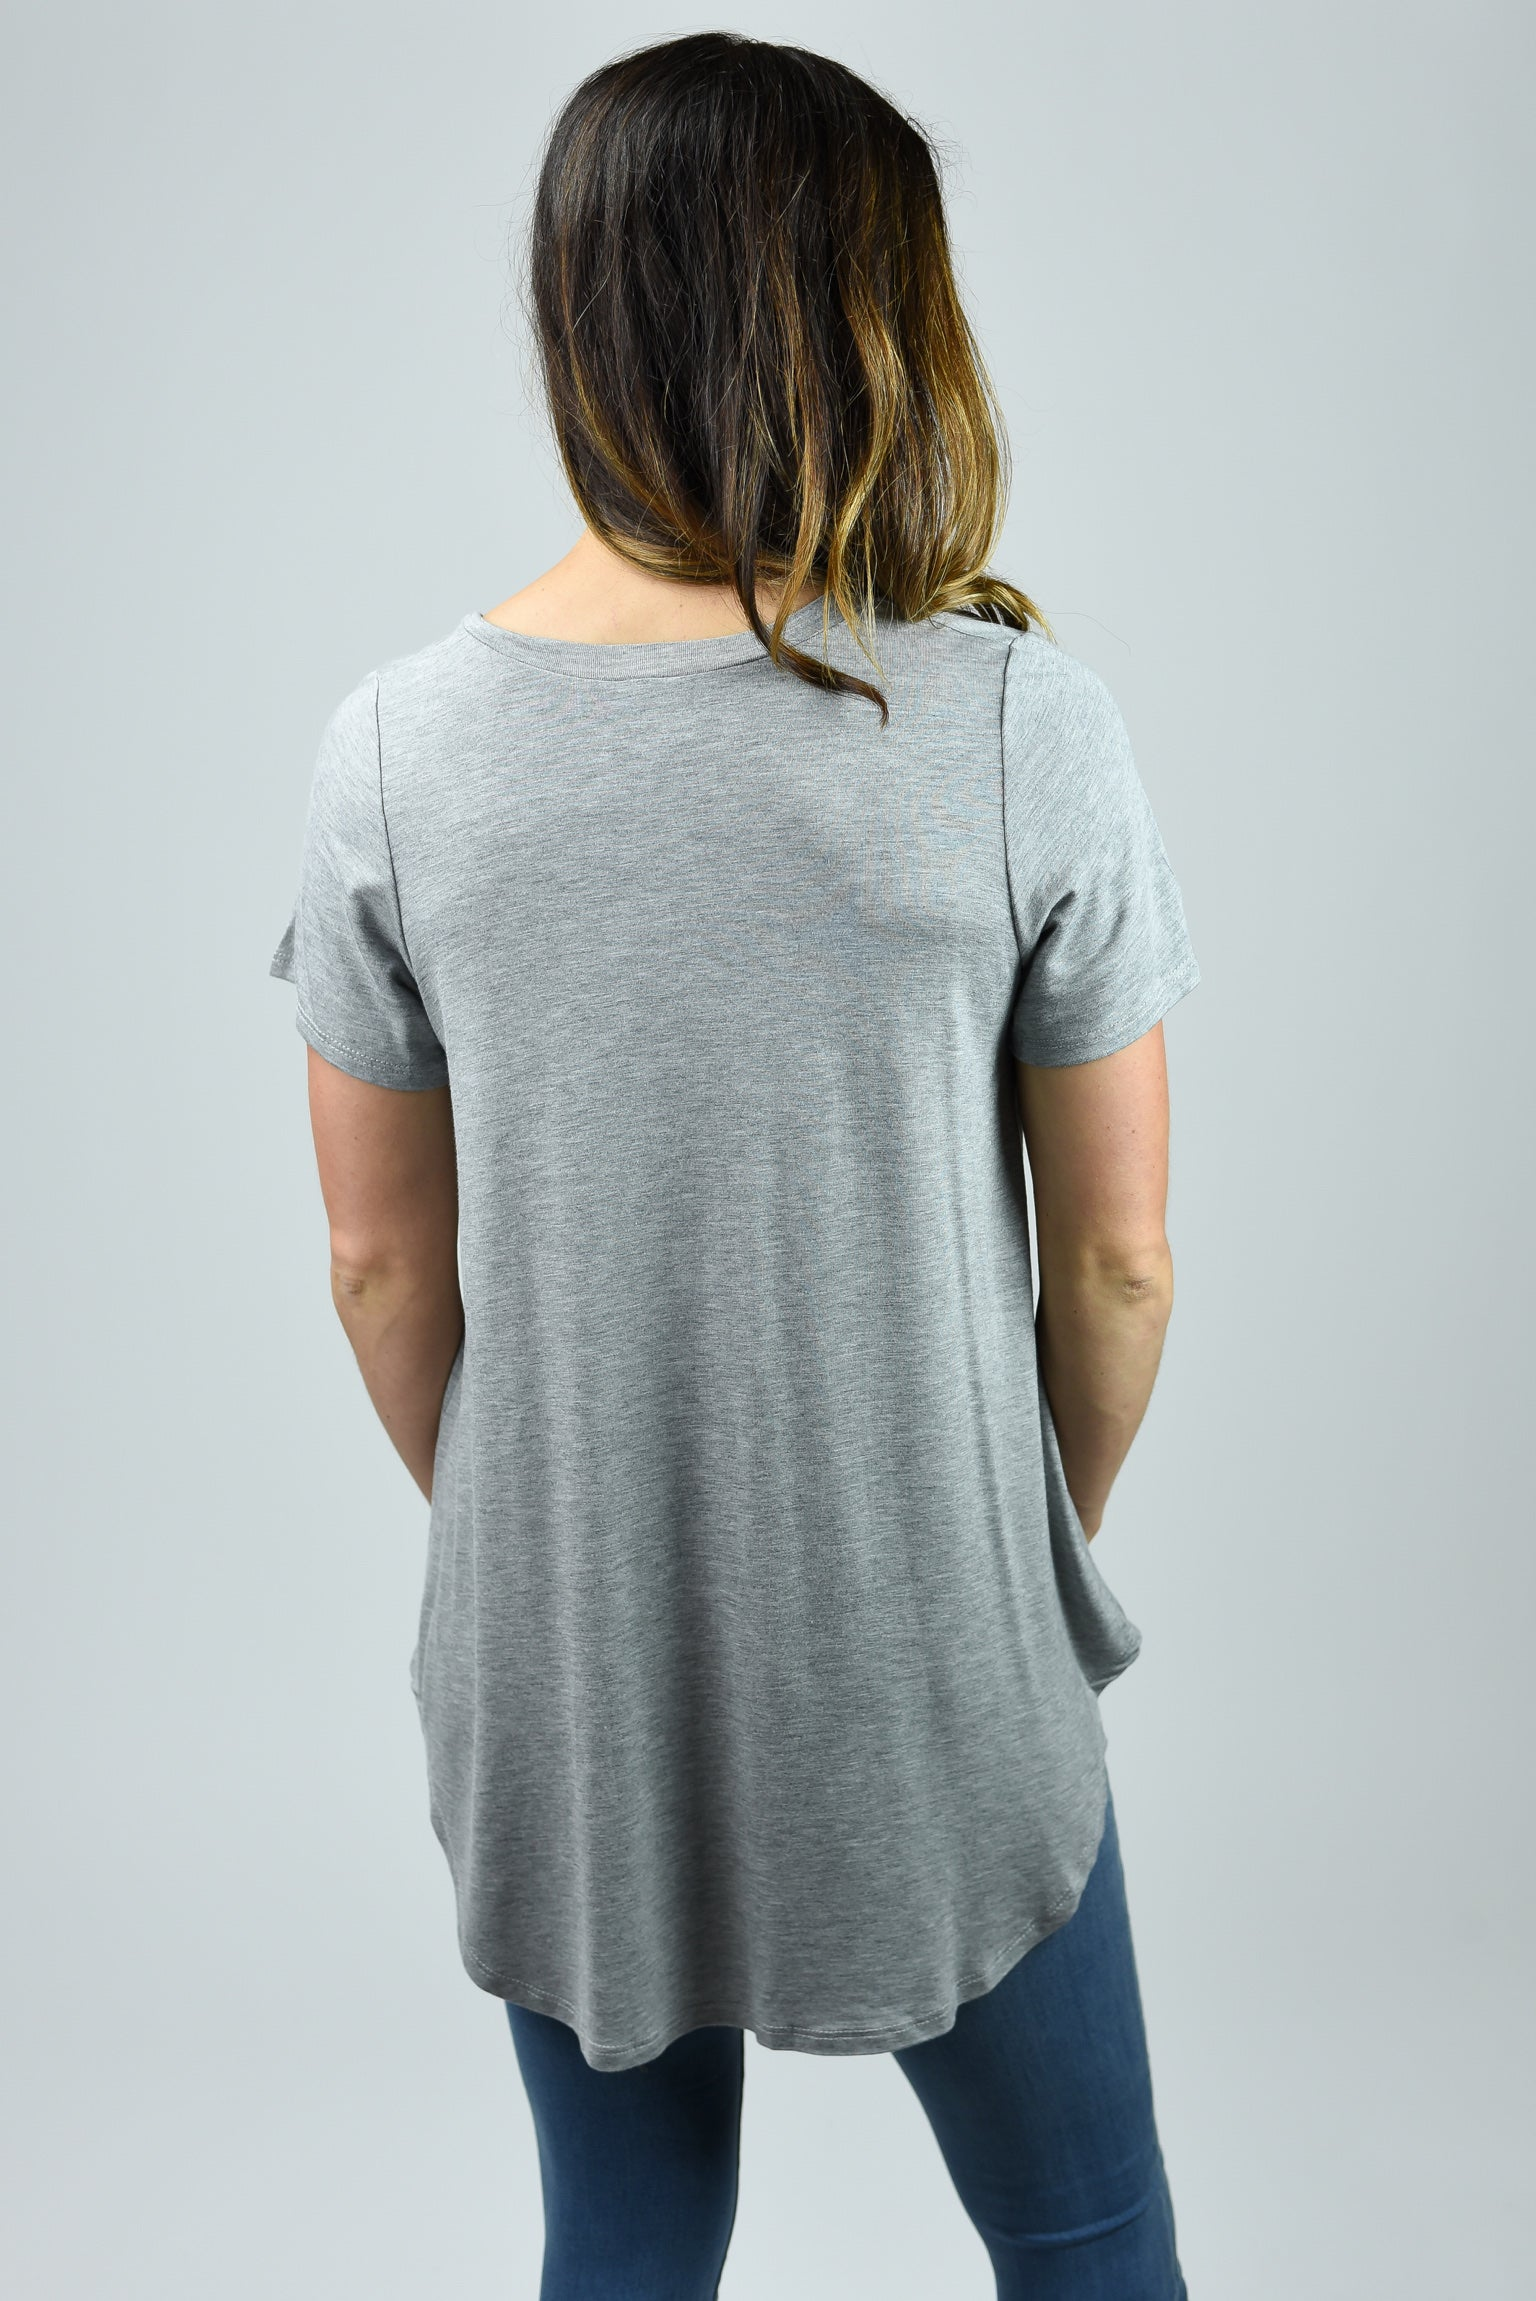 On Demand Basic Grey Tee